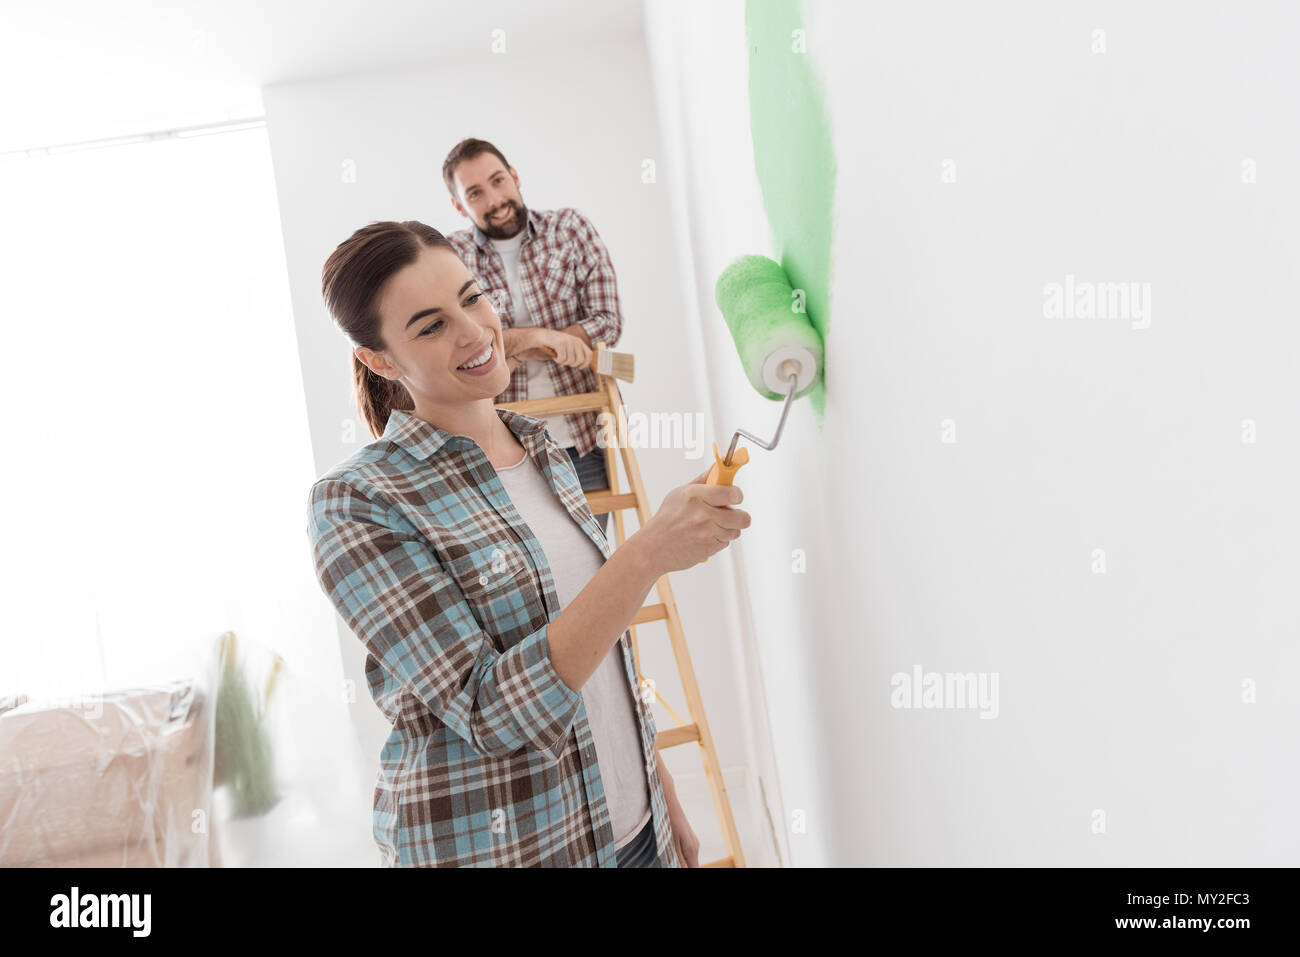 Young cheerful couple renovating their new house, the woman is painting with a paint roller and her boyfriend is looking at her - Stock Image